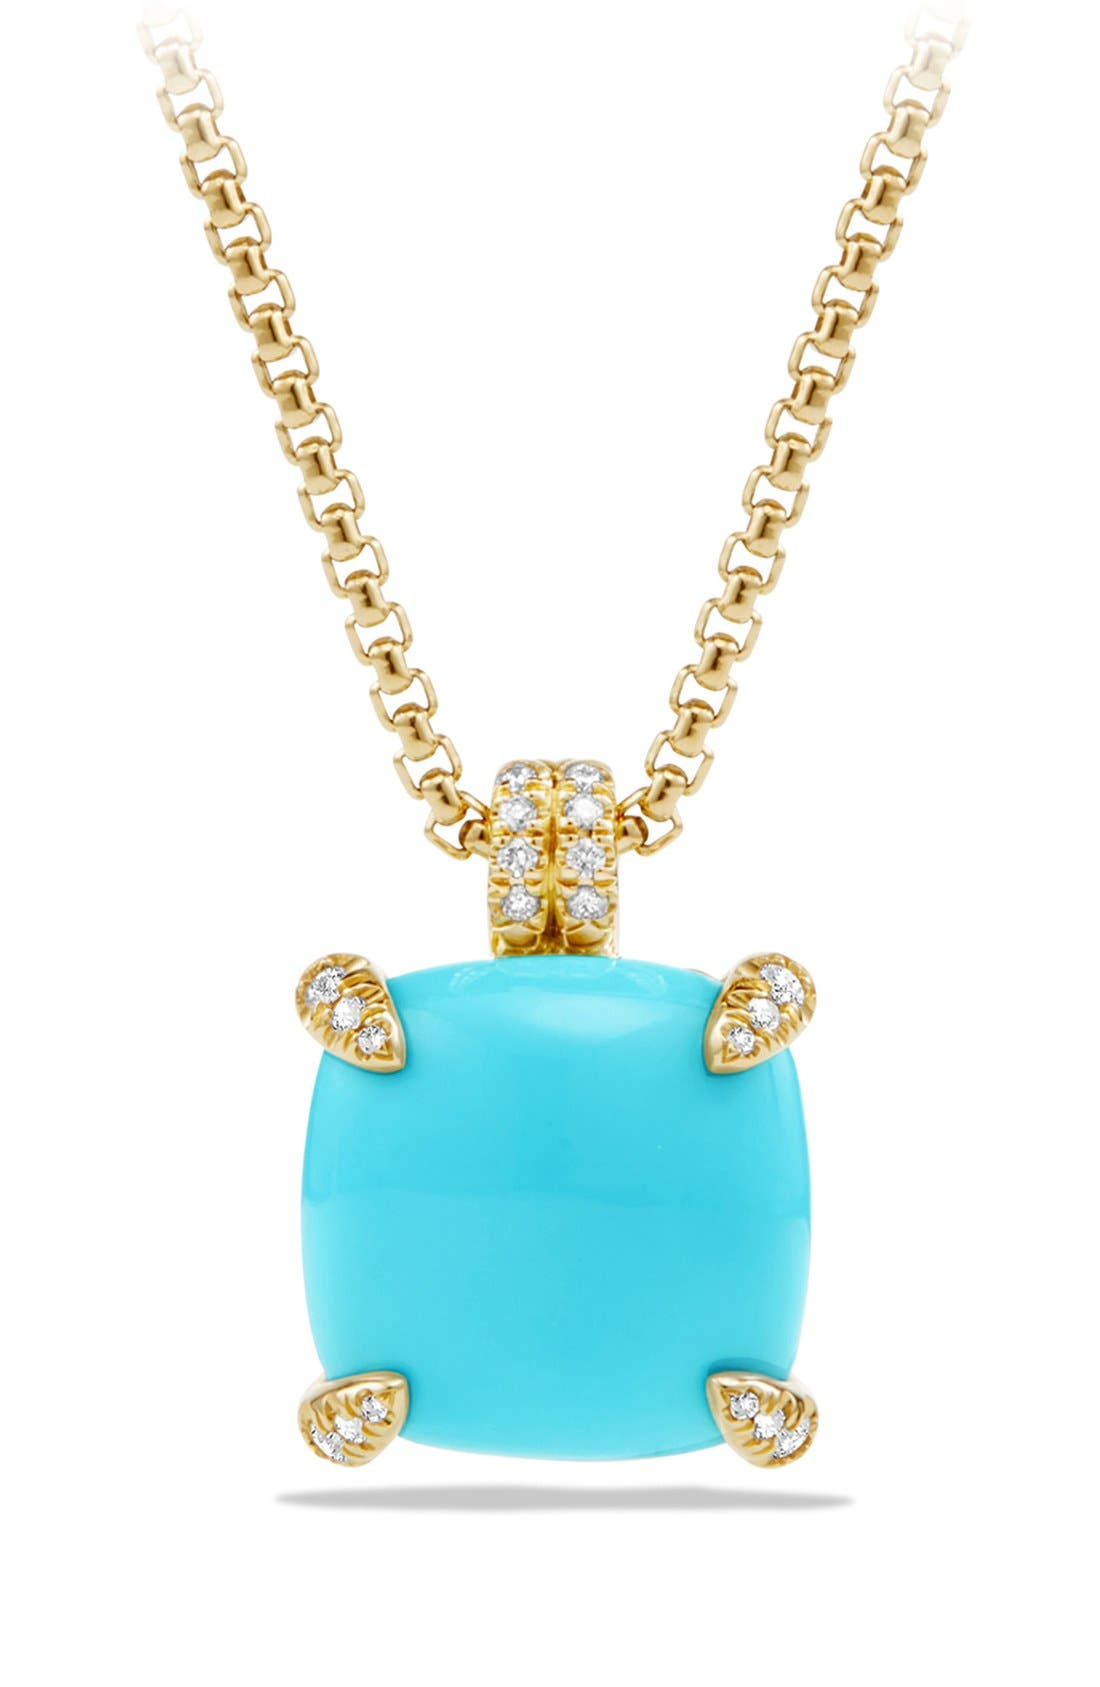 'Châtelaine' Pendant Necklace with Diamonds in 18K Gold,                             Main thumbnail 1, color,                             Turquoise